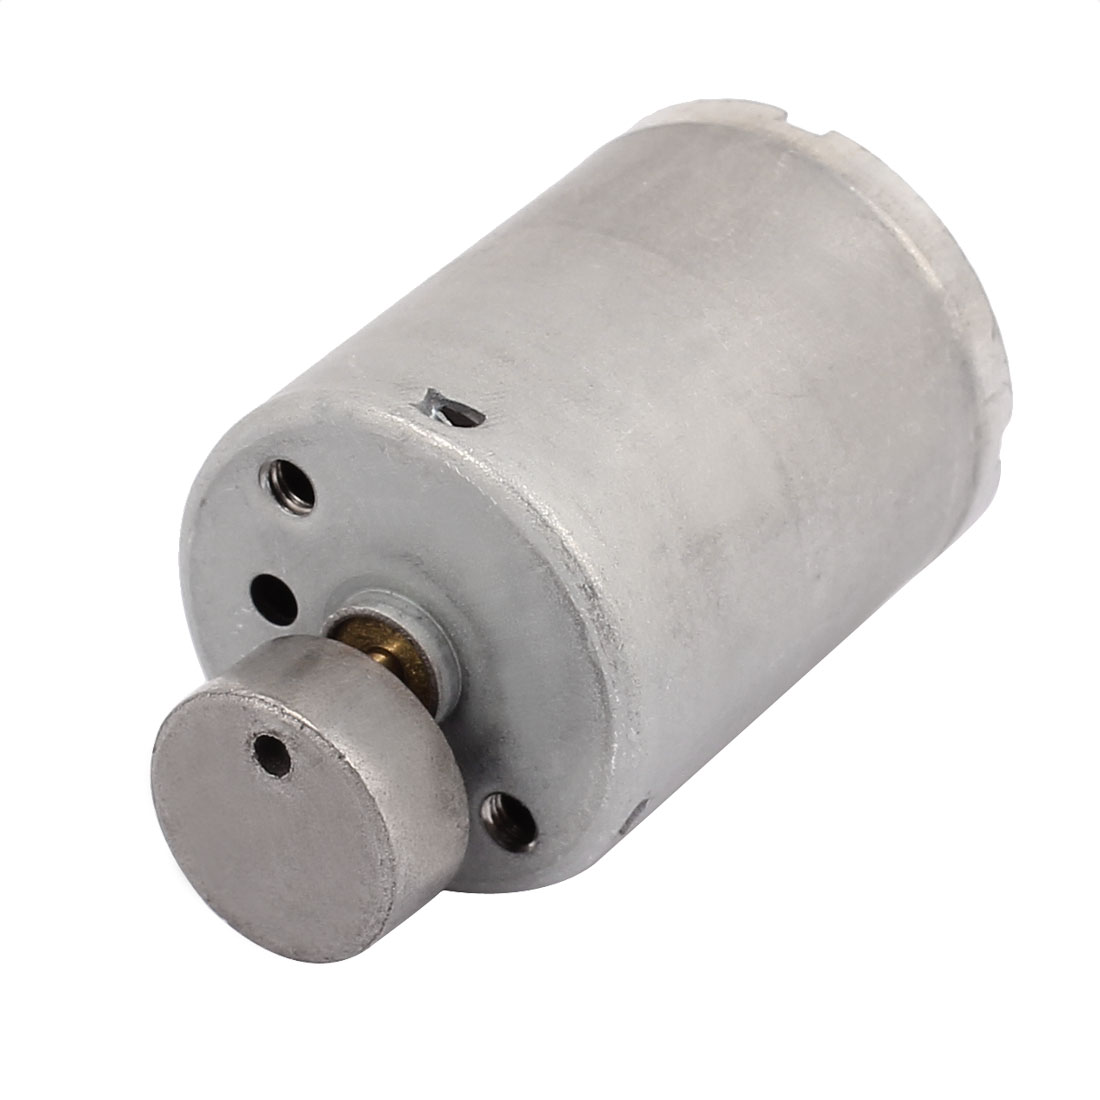 DC 24V 3800RPM Large Torque Cylindrical Micro Vibration Motor for Electric Massage